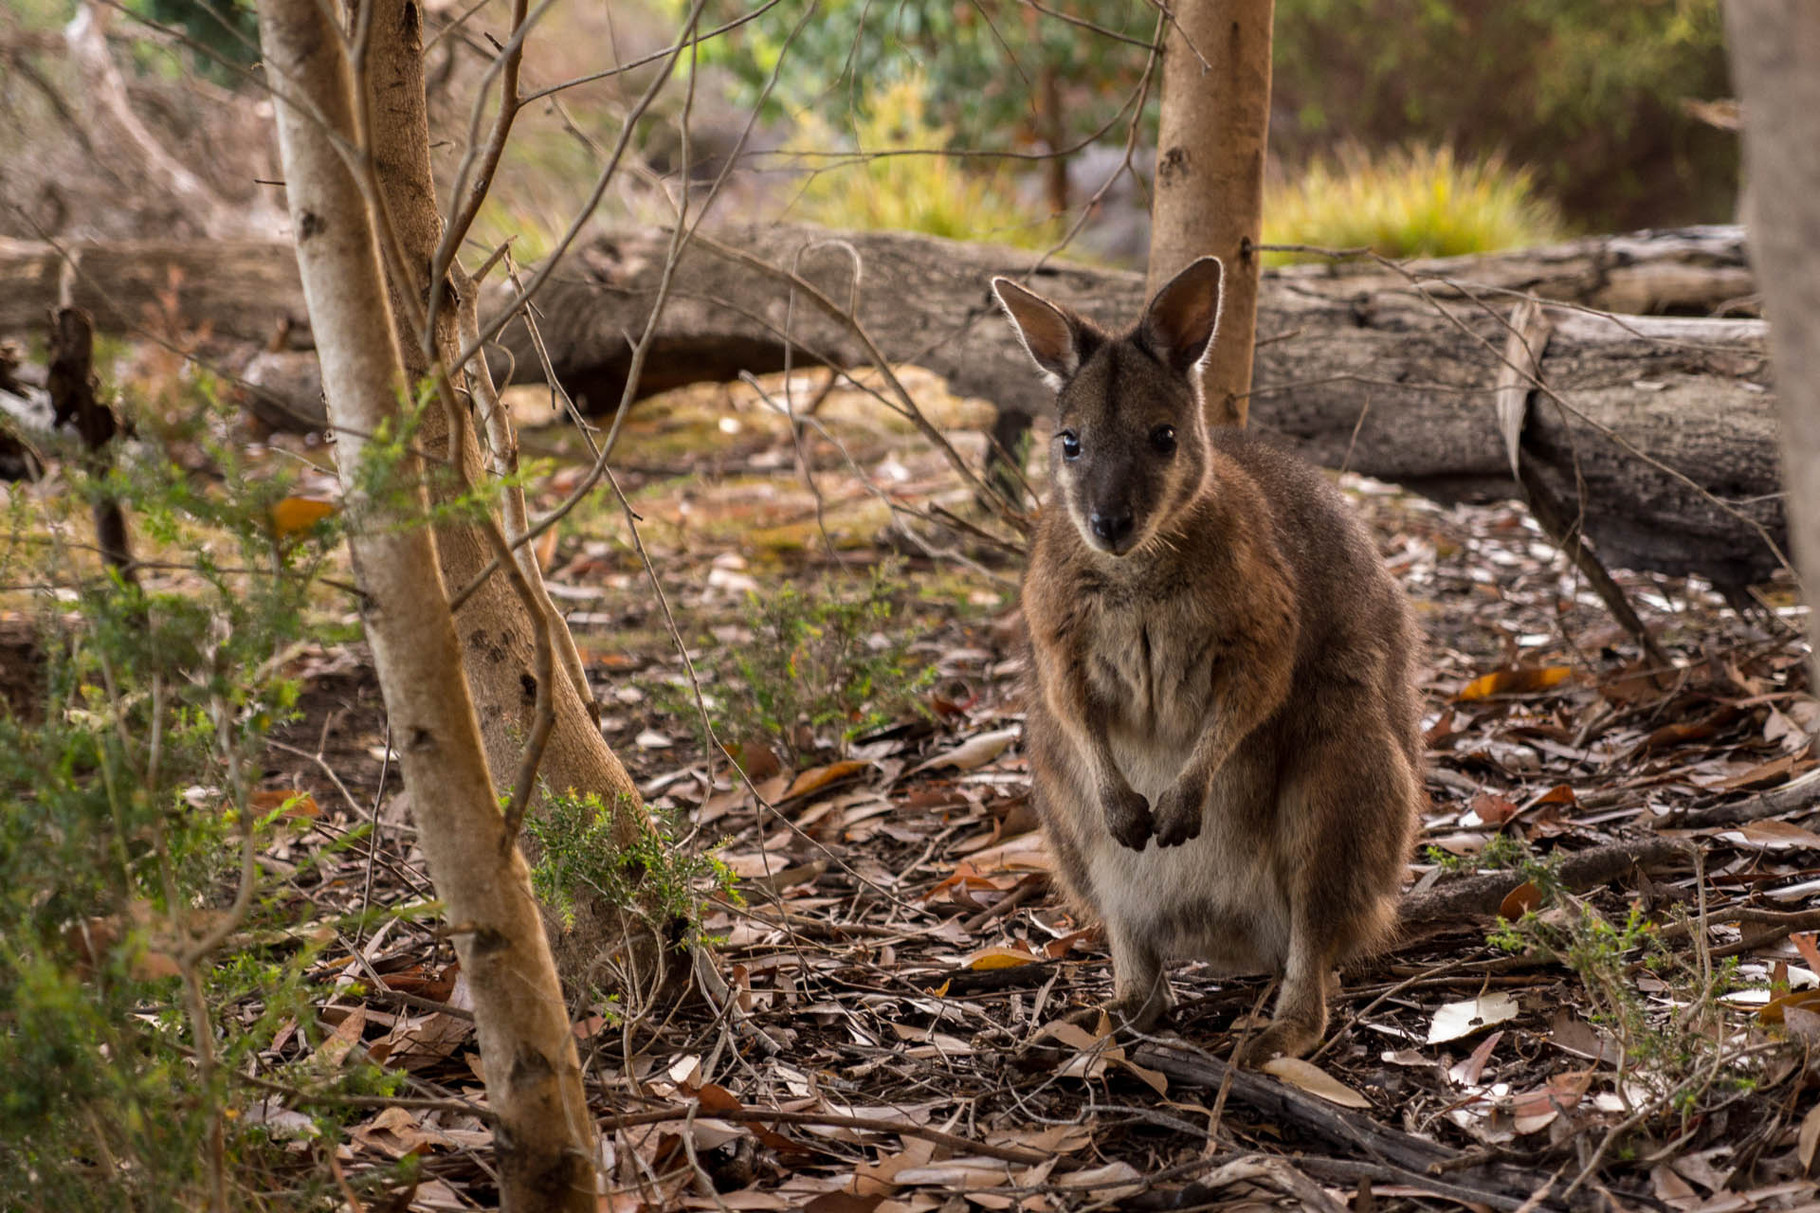 Wallaby, Flinders Chase National Park, Kangaroo Island